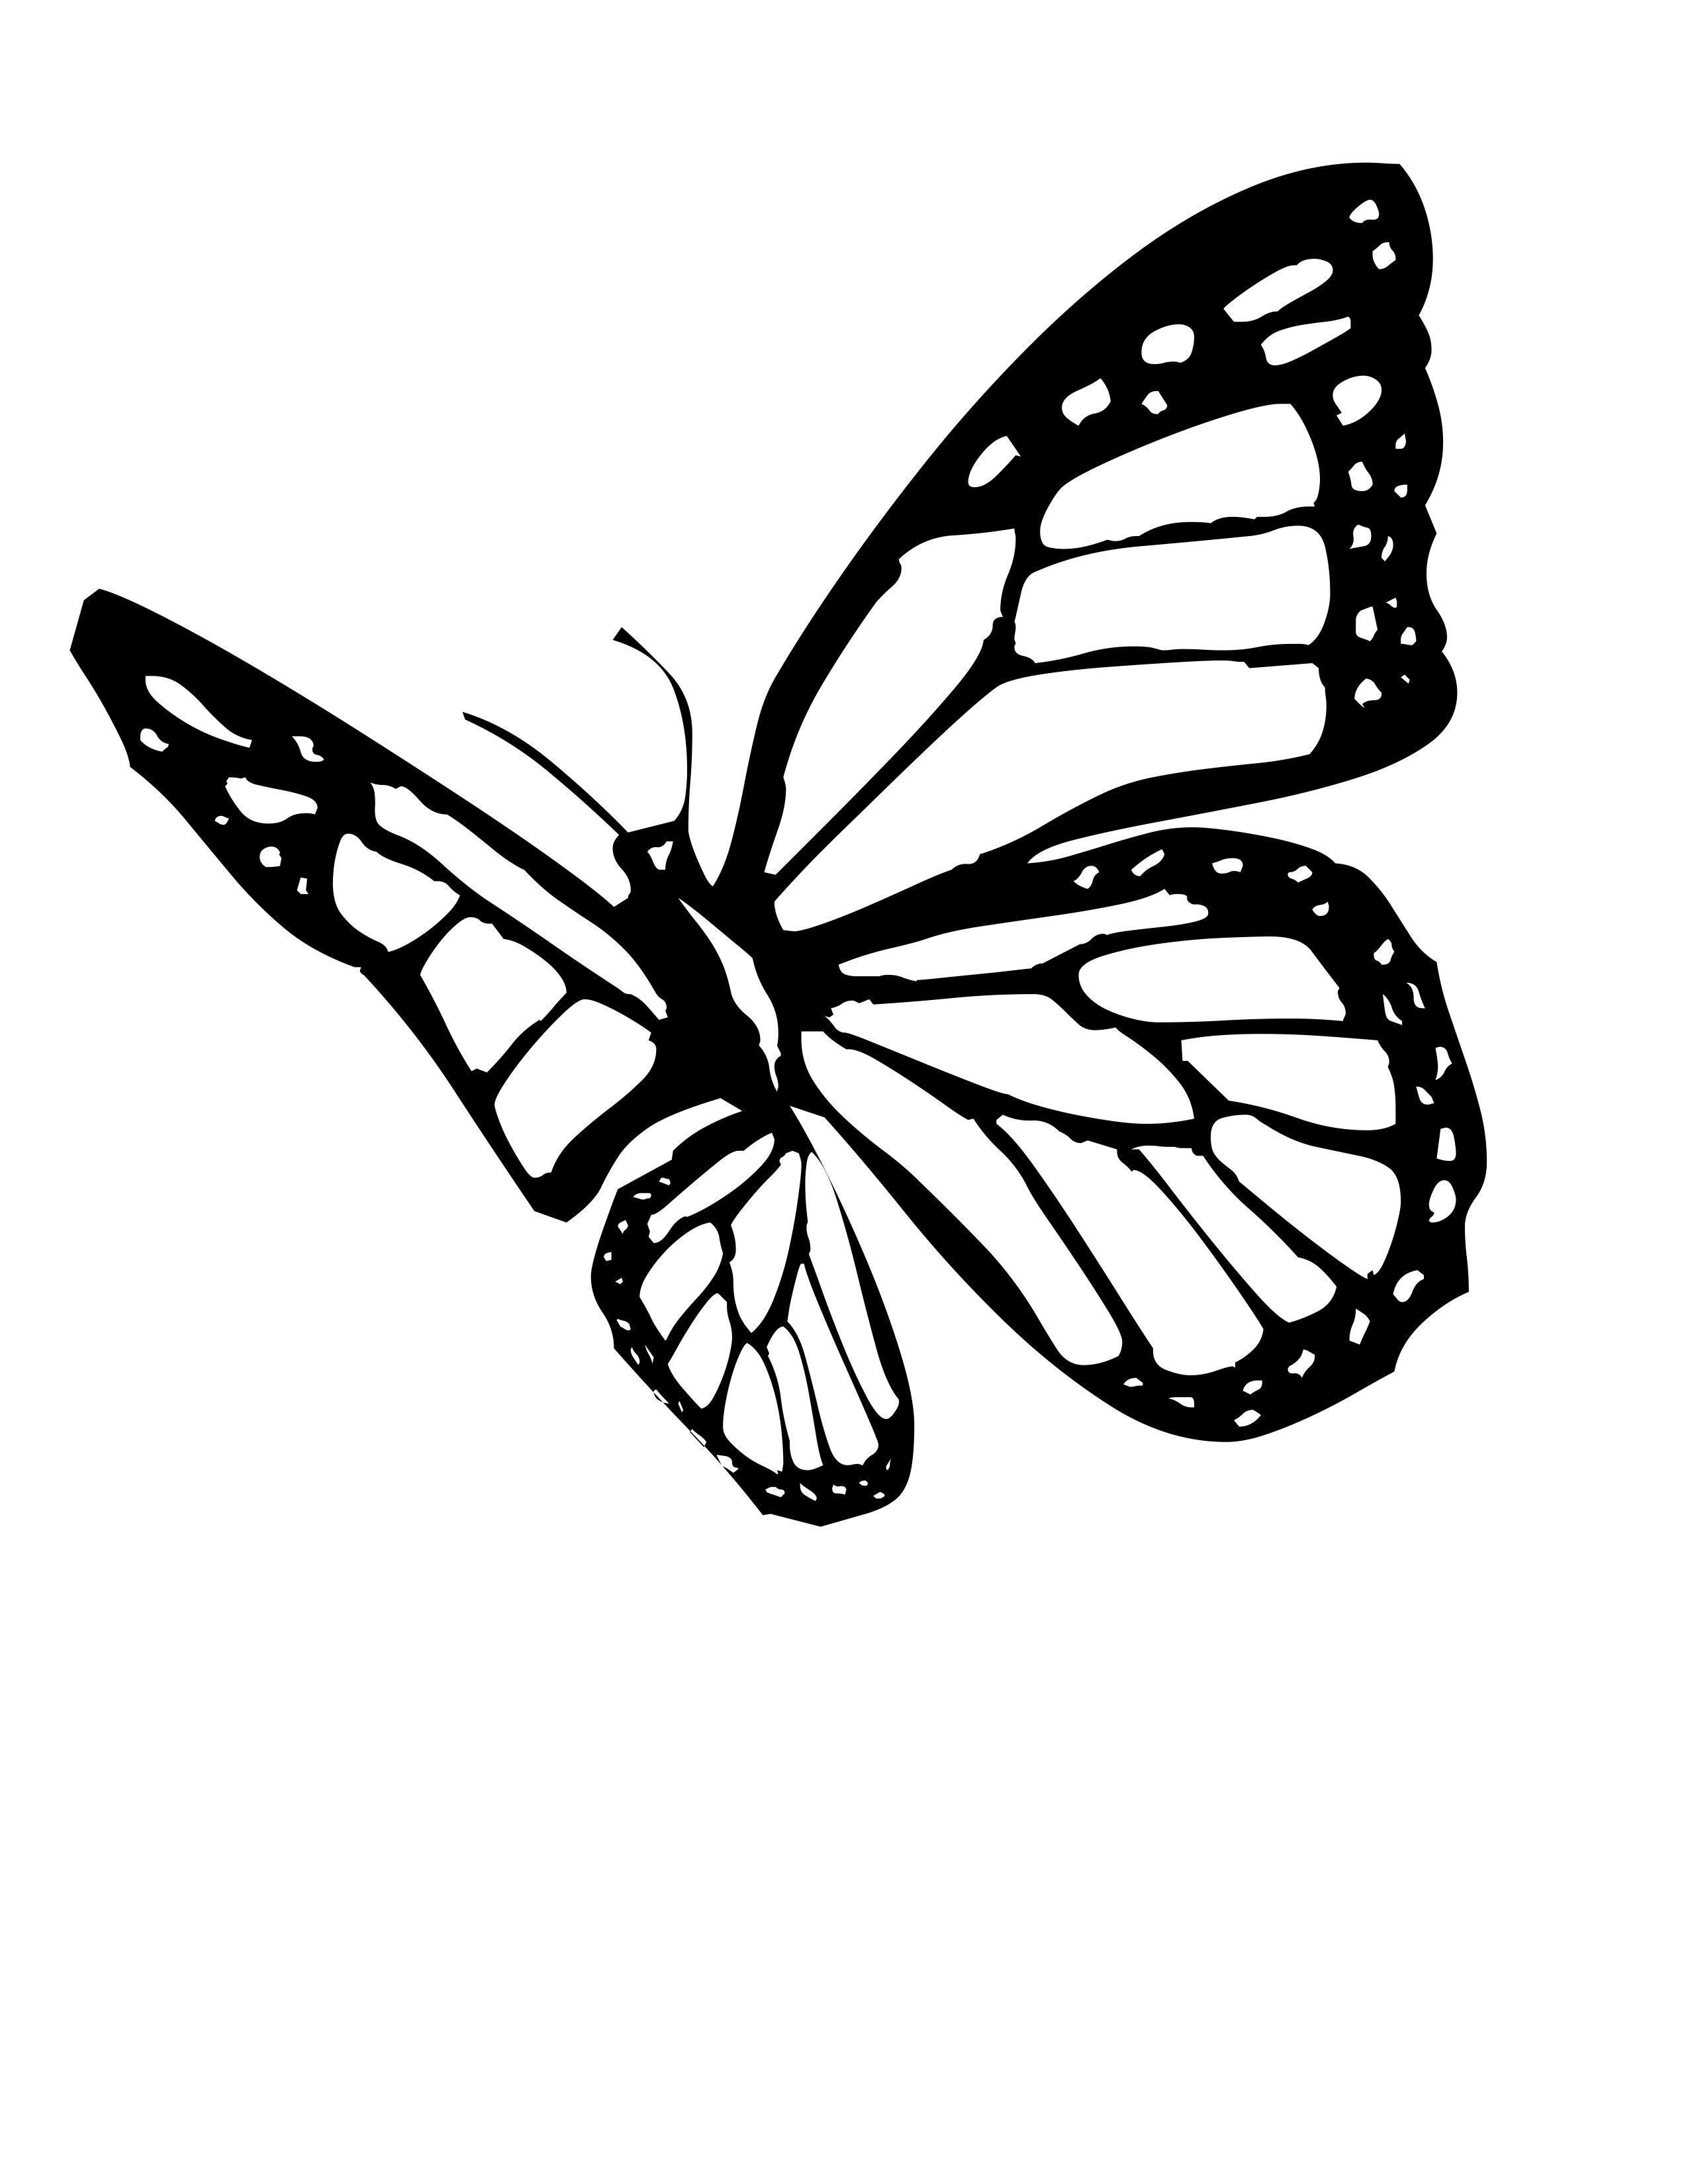 Butterfly Coloring Pages Butterfly Tattoo Stencil Monarch Butterfly Tattoo Butterfly Outline